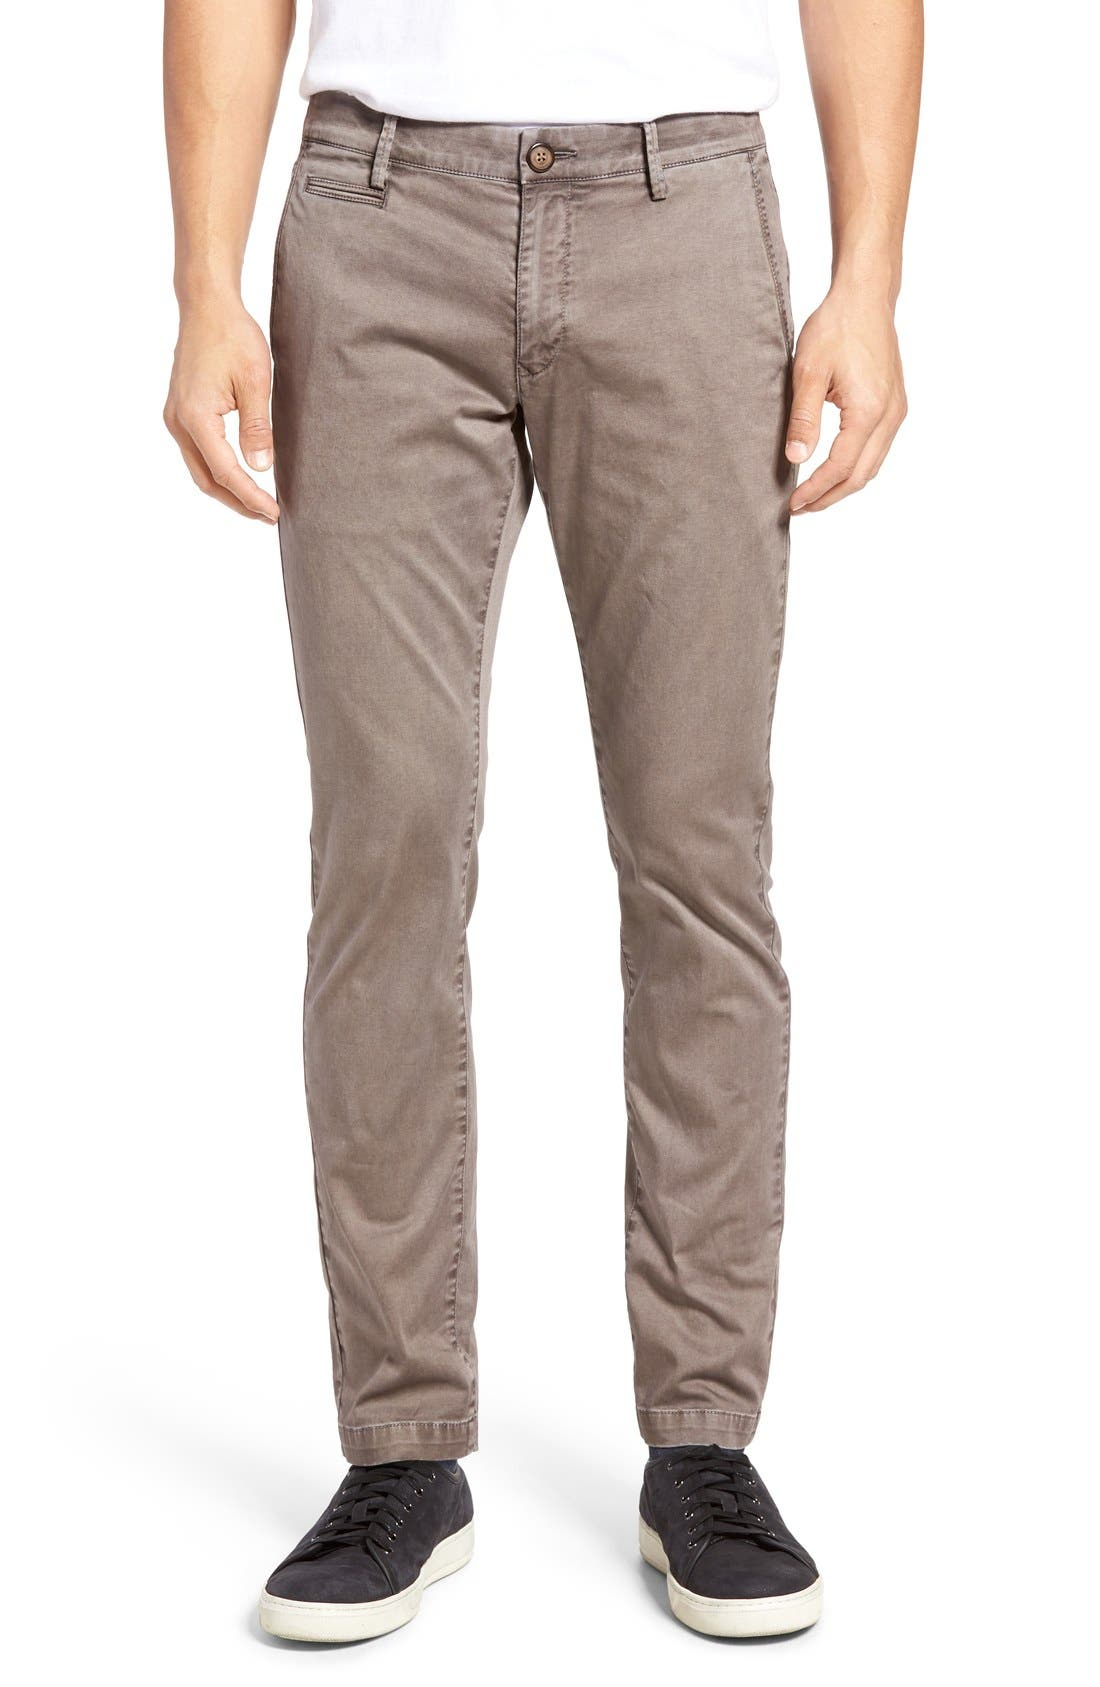 Enzyme Washed Chinos,                             Alternate thumbnail 5, color,                             020